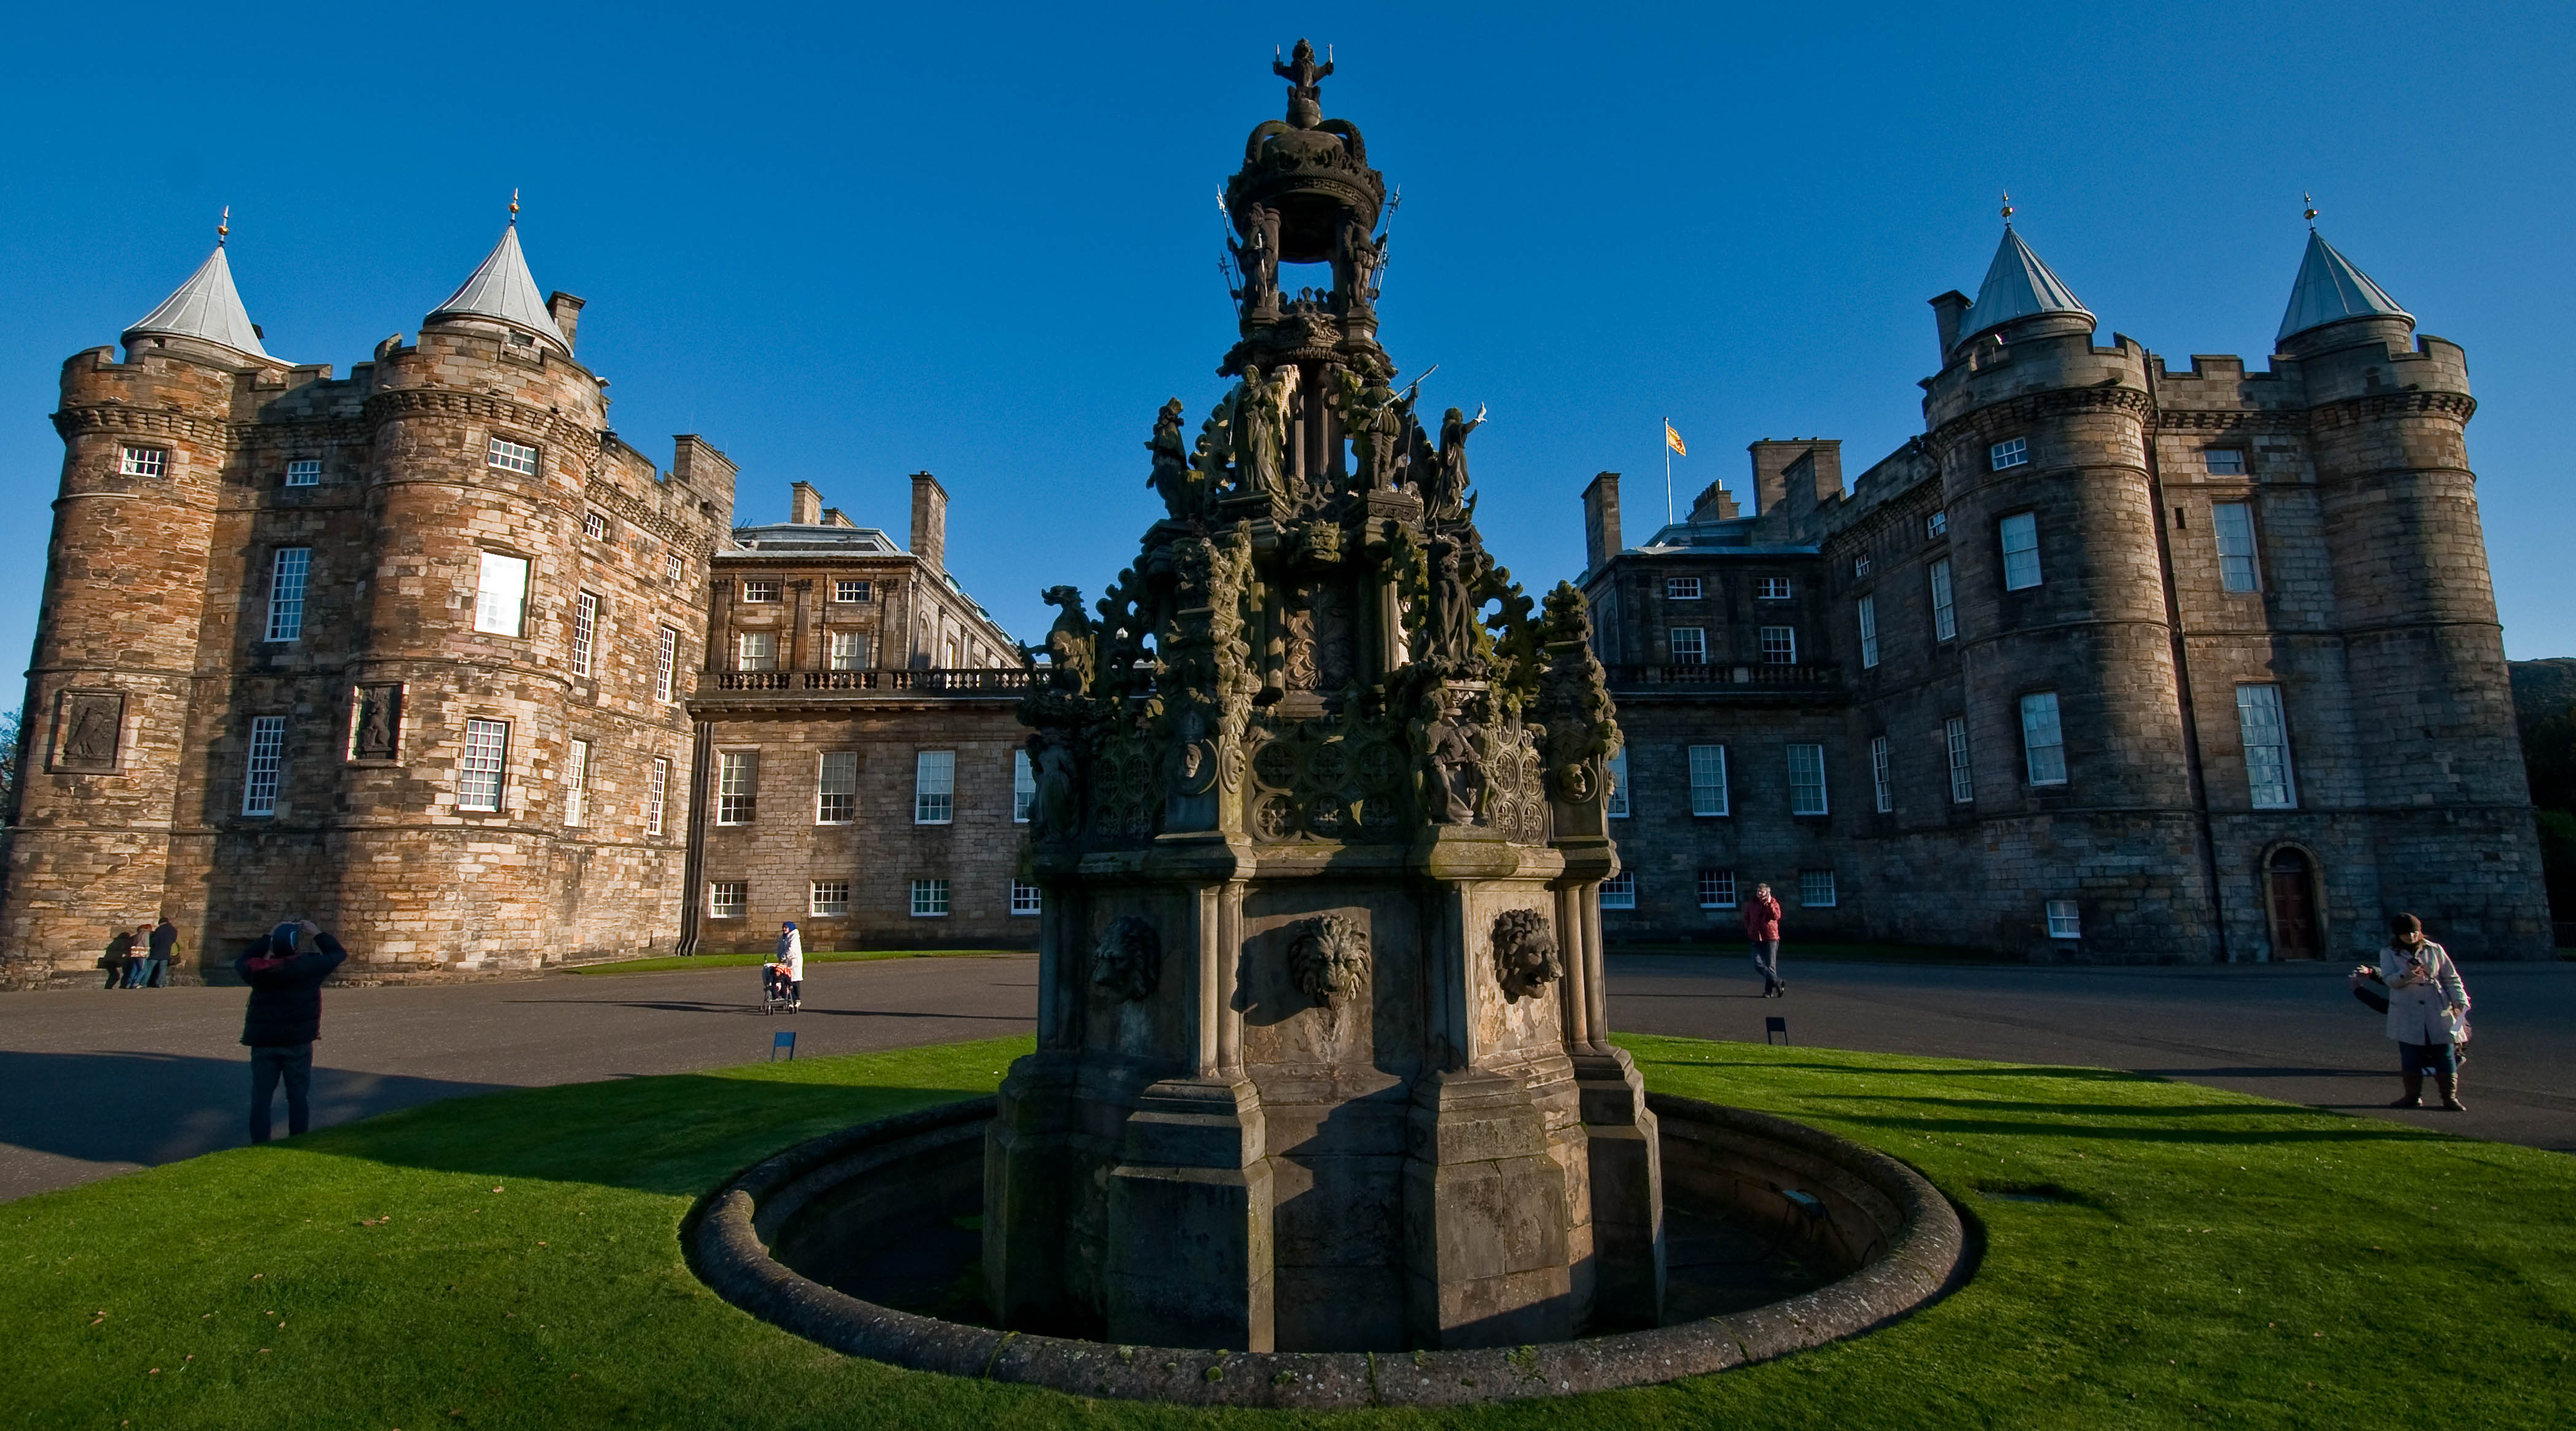 SEE: THE PALACE OF HOLYROODHOUSE